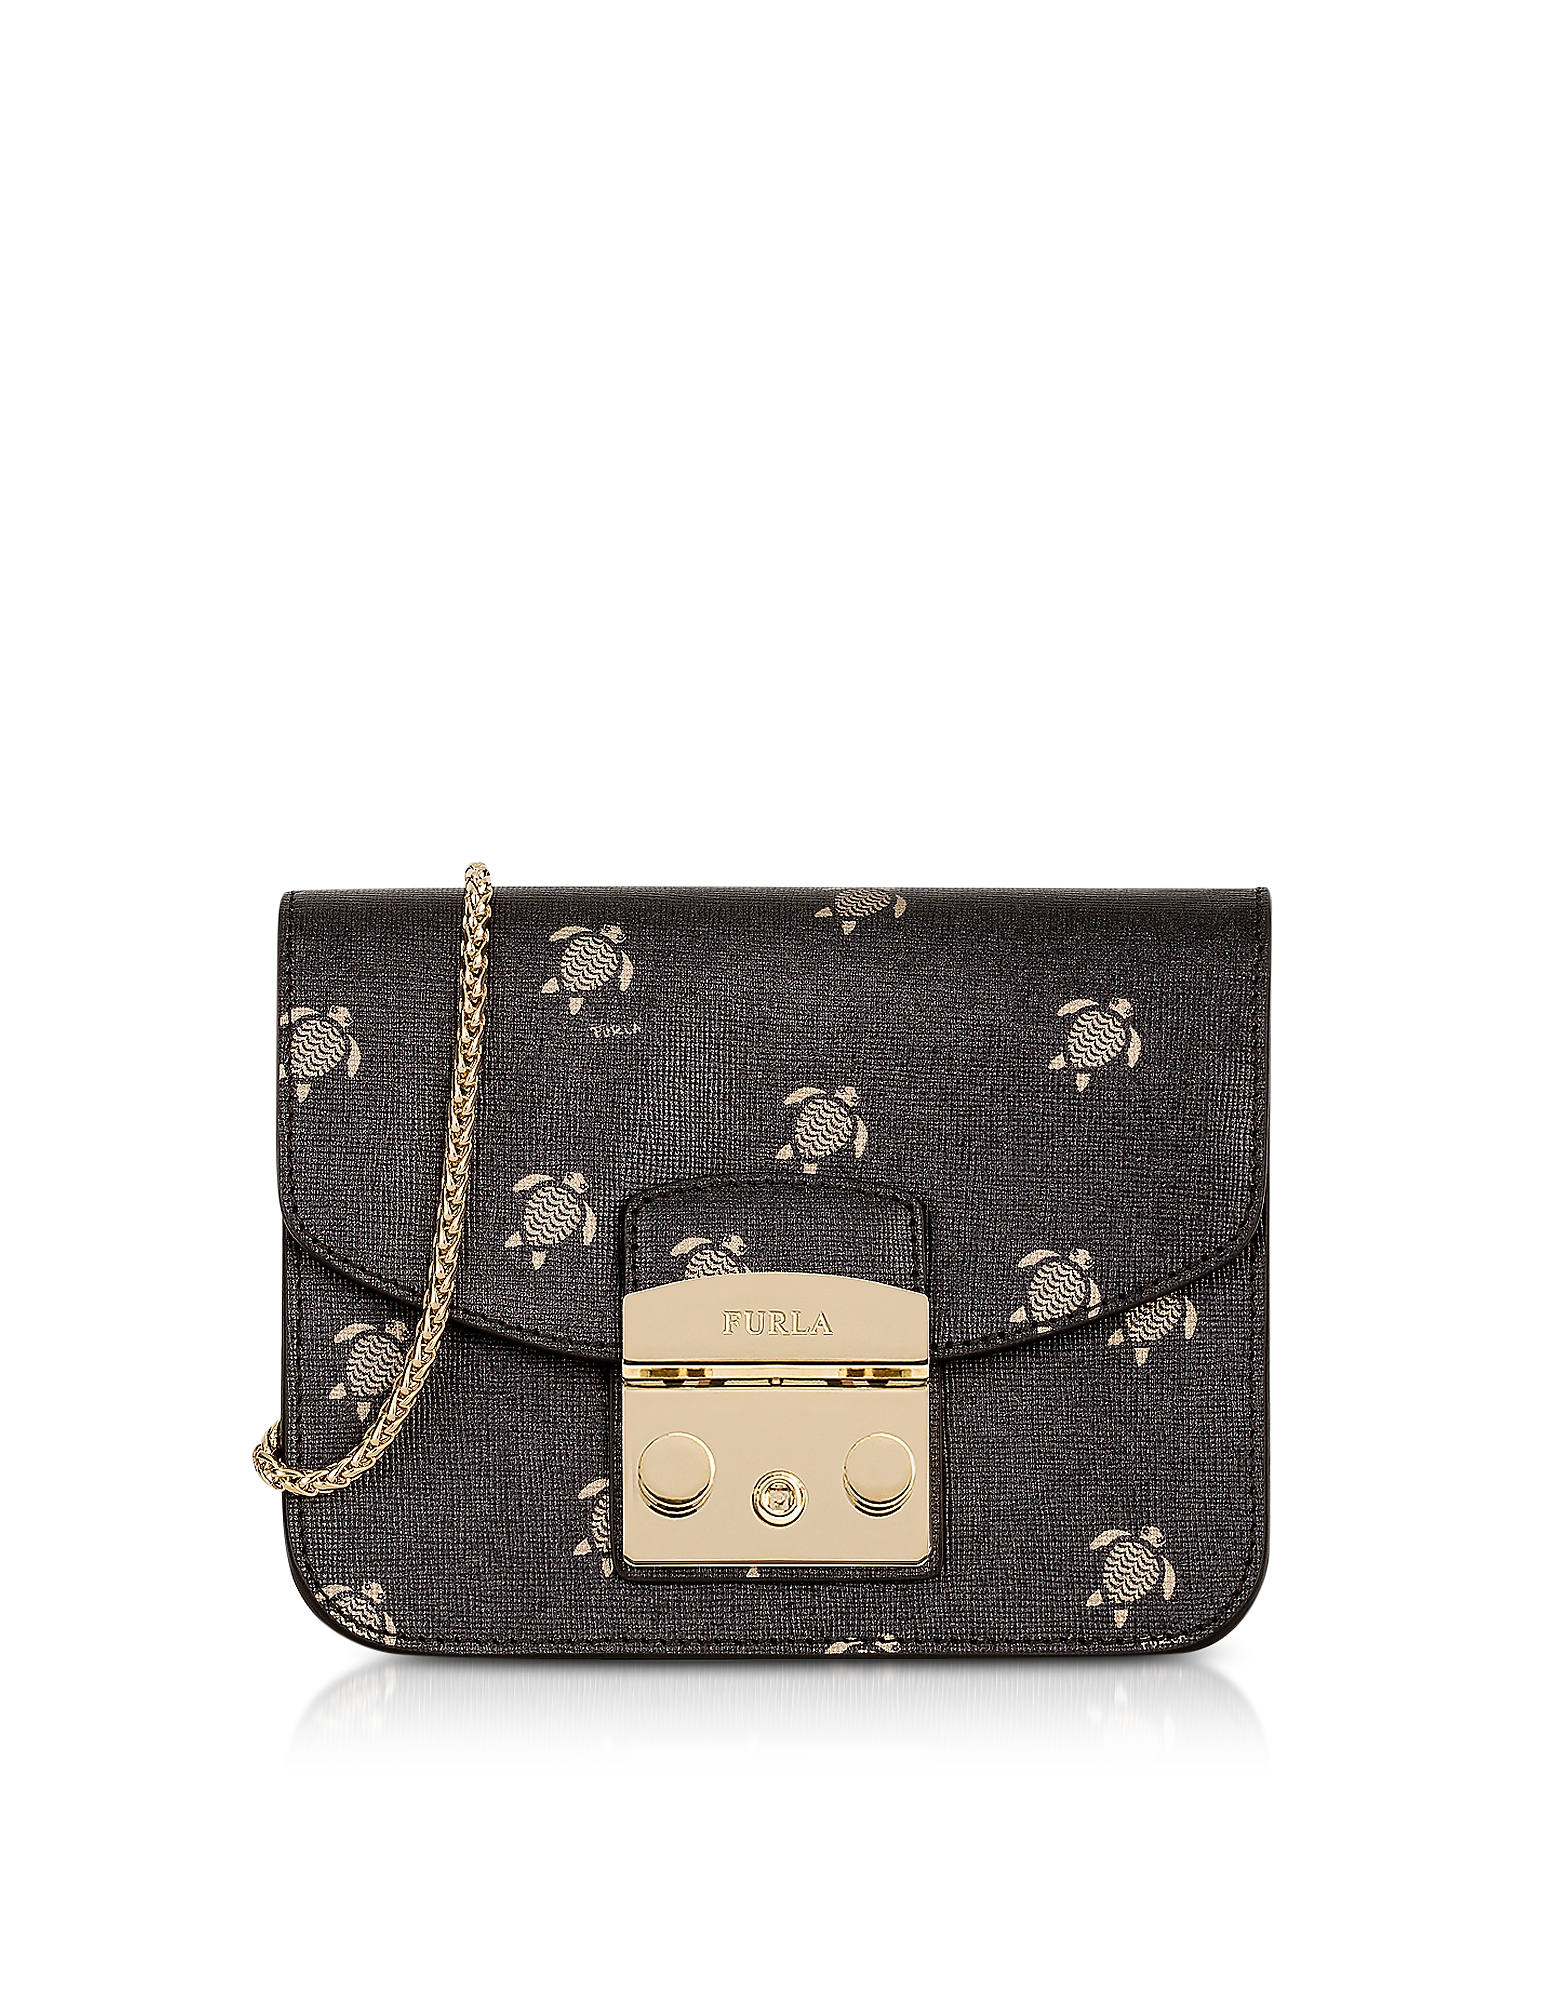 Furla Handbags, Toni Onyx Mini Turtle Printed Saffiano Leather Metropolis Mini Crossbody Bag